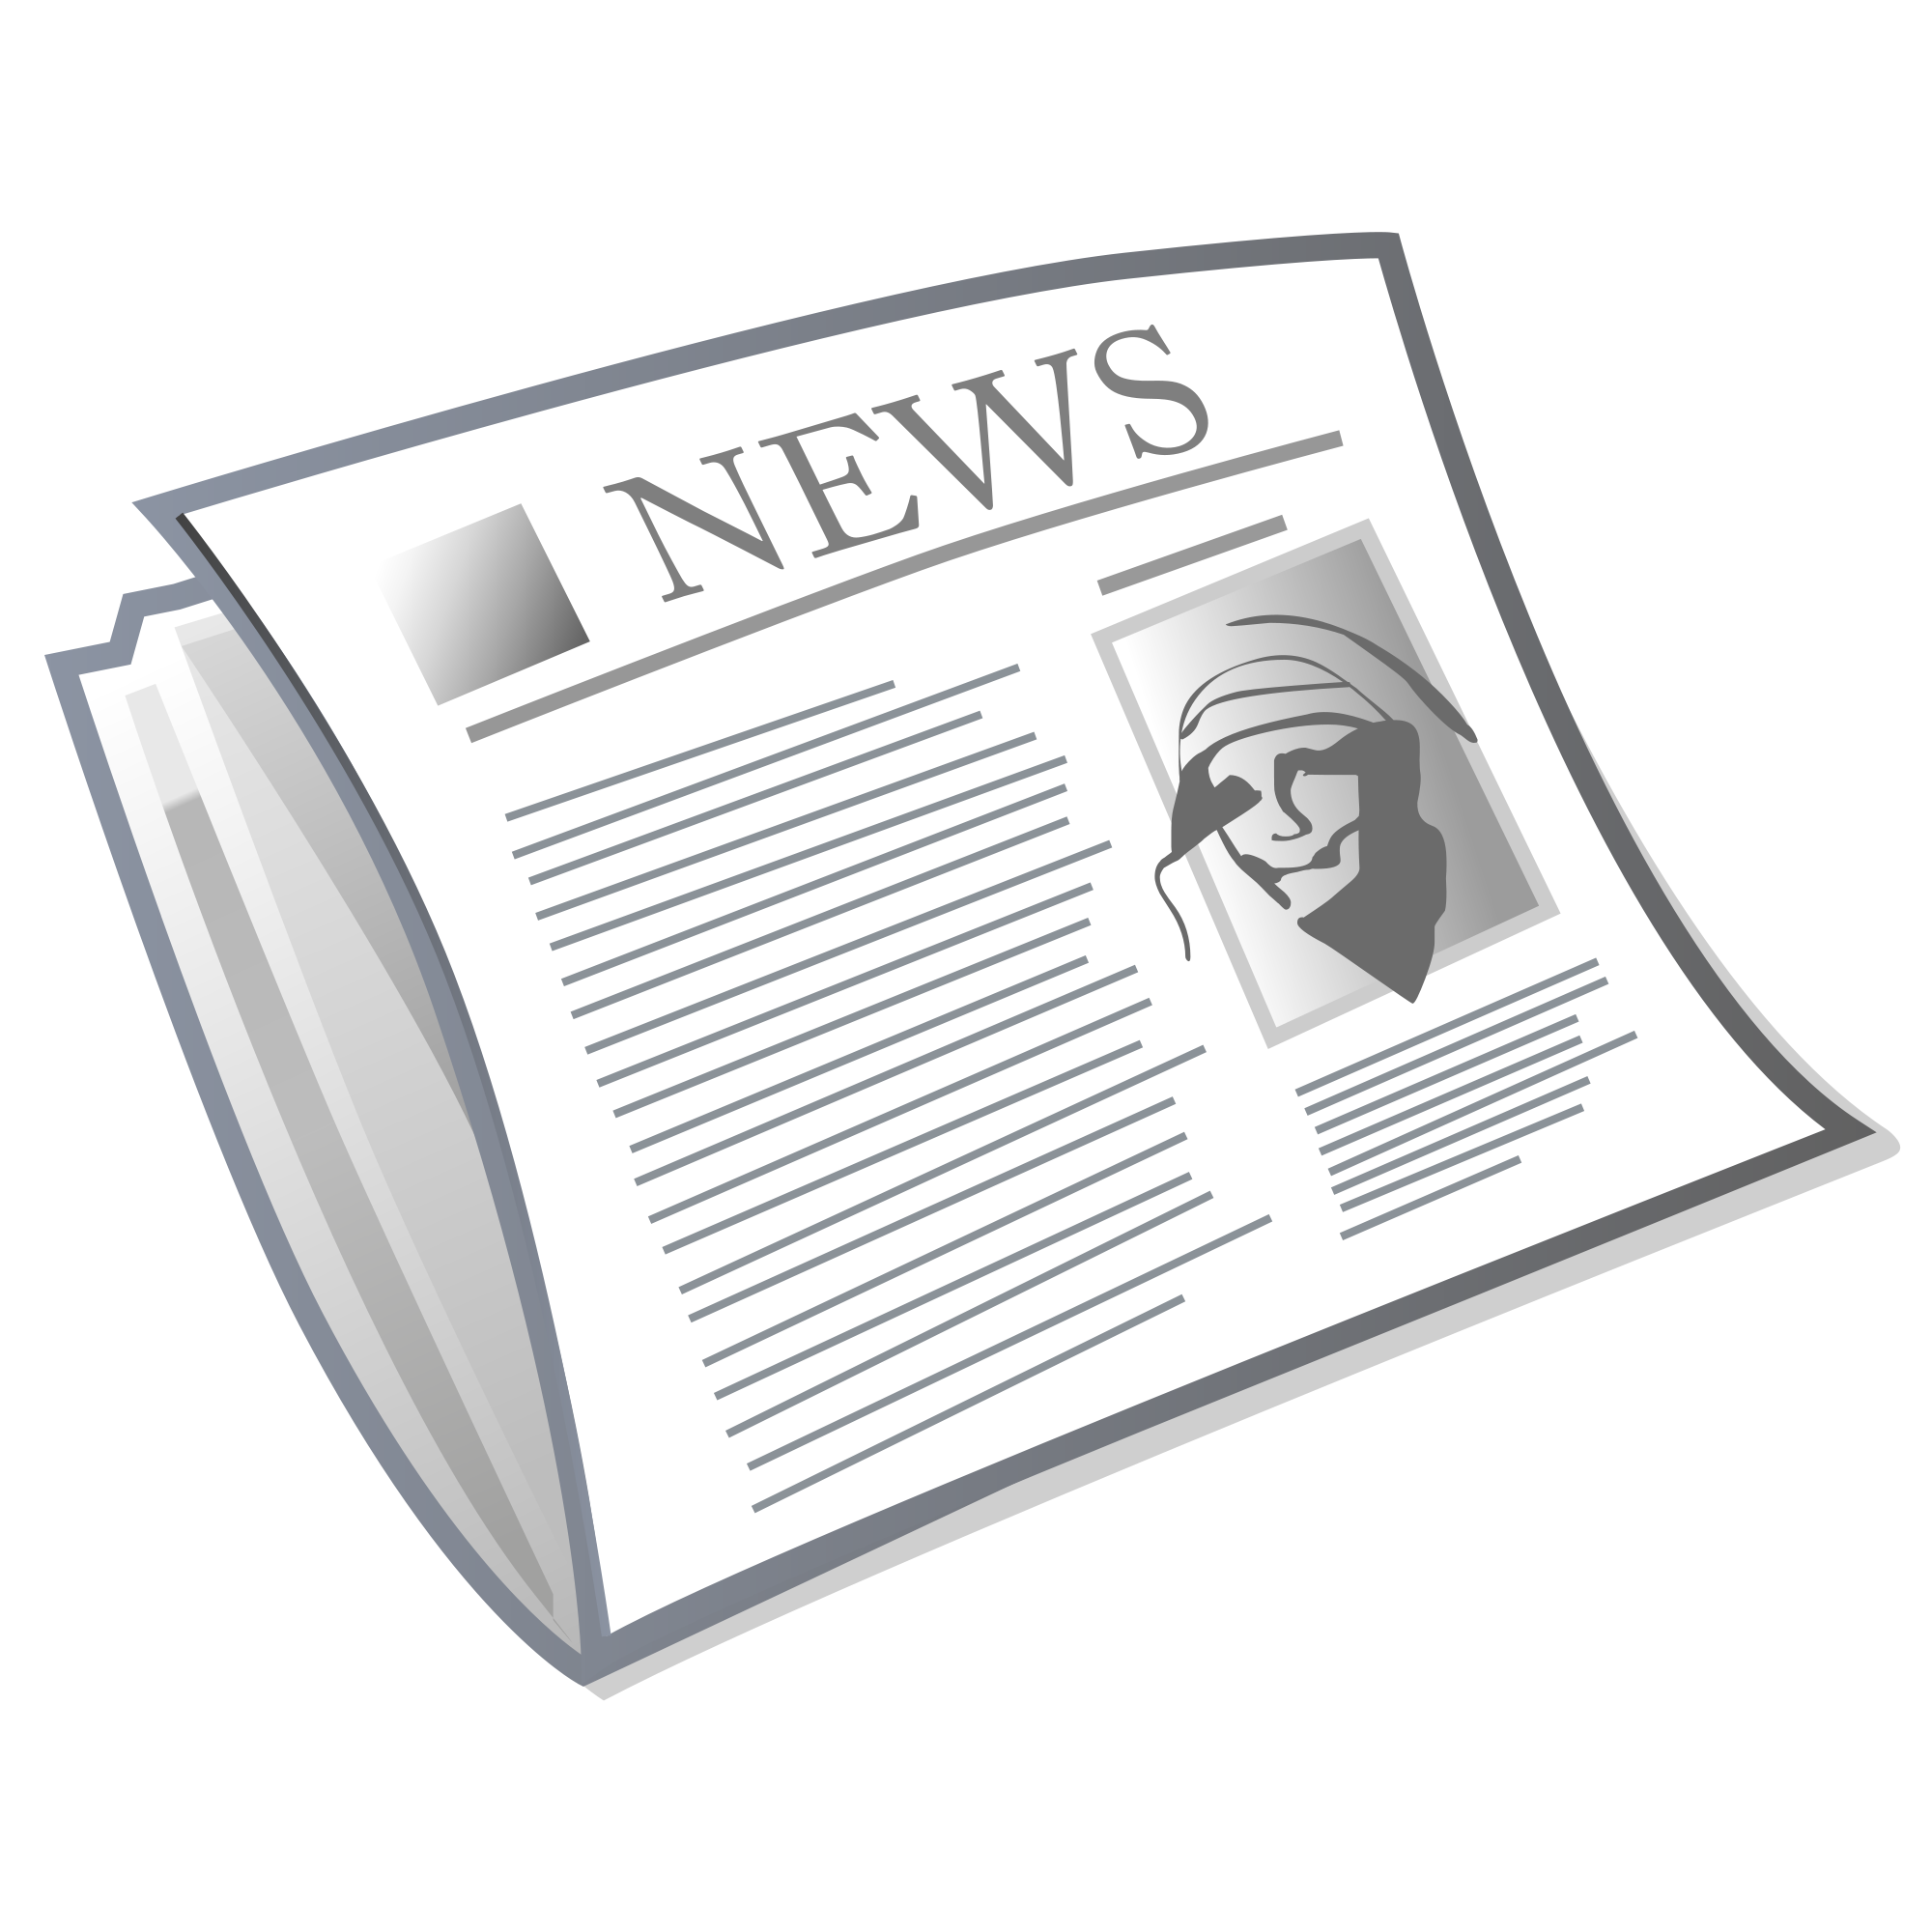 Blank newspaper png transparent. Images pluspng open pluspngcom